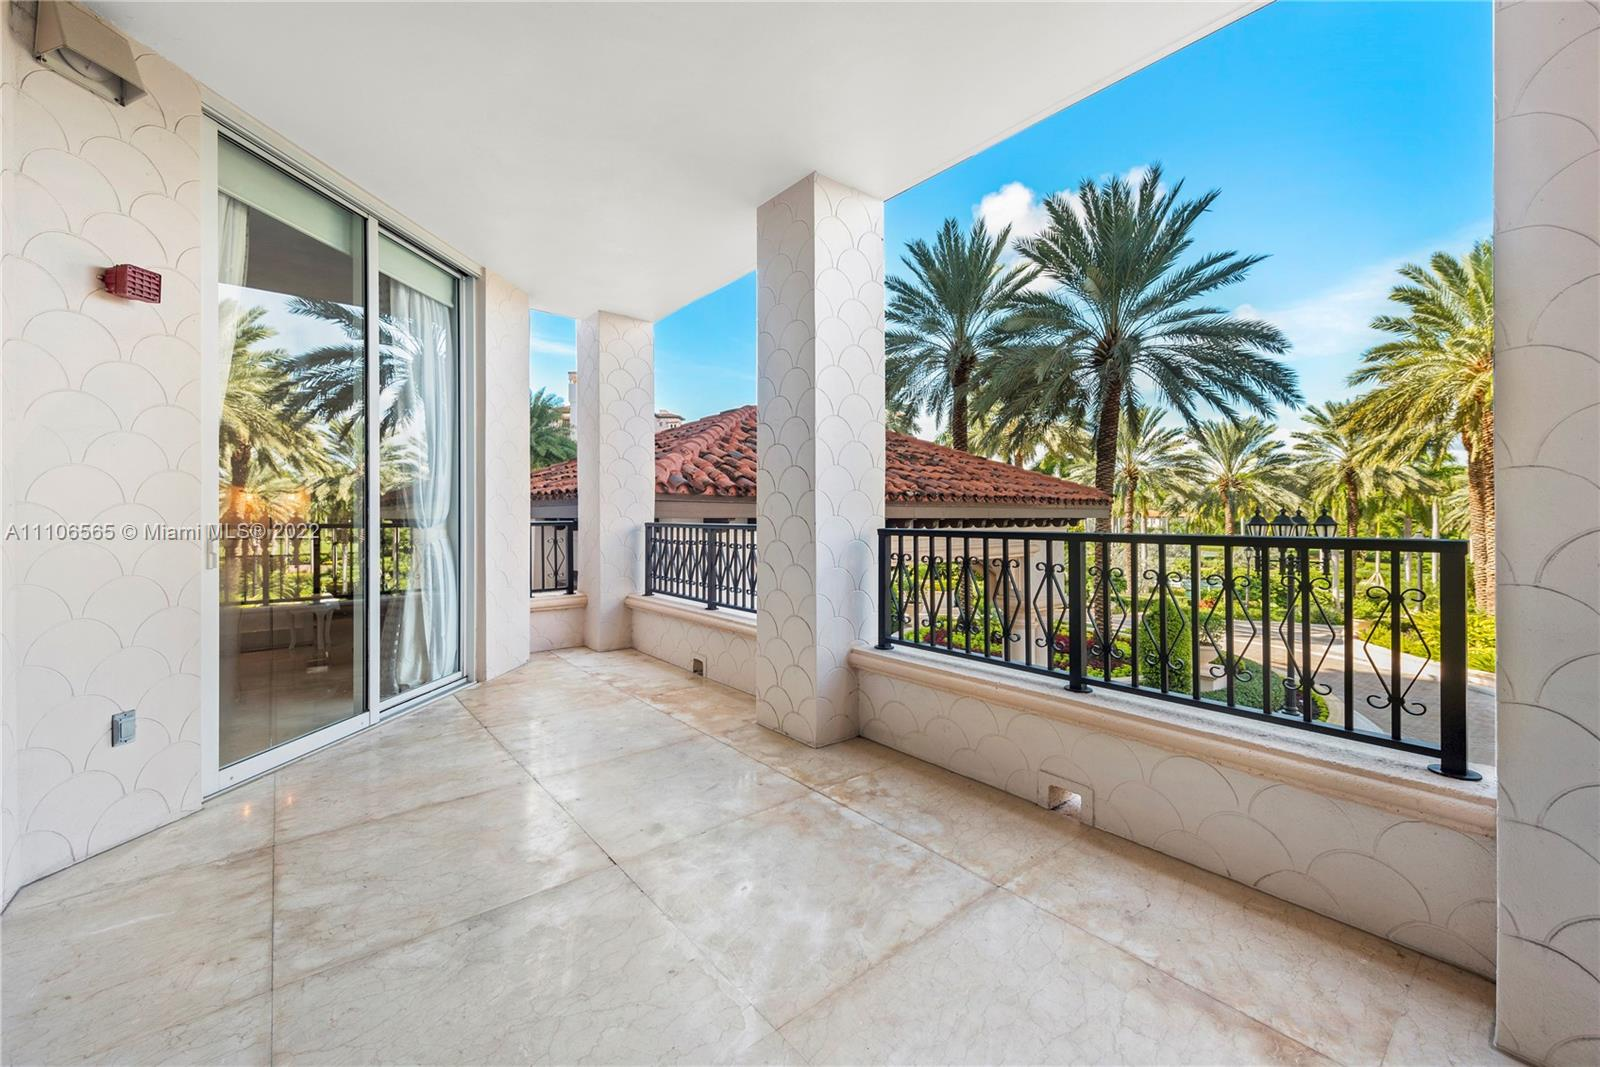 Elegant Roberto Cavalli custom home interiors and Baccarat light fixtures make this 3BR/3+1BA Pallazo Del Mare 3500 SF residence your dream home. Oversized terraces grace the magnificent waterfront unit to enjoy the Atlantic Ocean, South Point, and Golf Course views. A voluminous layout made ideally for entertaining combined with excellent craftsmanship, meticulous attention to detail, and pleasing to the eye, iconic patterns and materials in the soft and elegant tone is a haven for relaxation. Marble floors adorn the unit w/spacious open living & dining rooms, plus a private study/media room. Open chef's kitchen w/top-of-the-line appliances. Gorgeous built-ins throughout the entire unit, no details spared. Become a part of Fisher Island Club exclusive lifestyle and so much more.